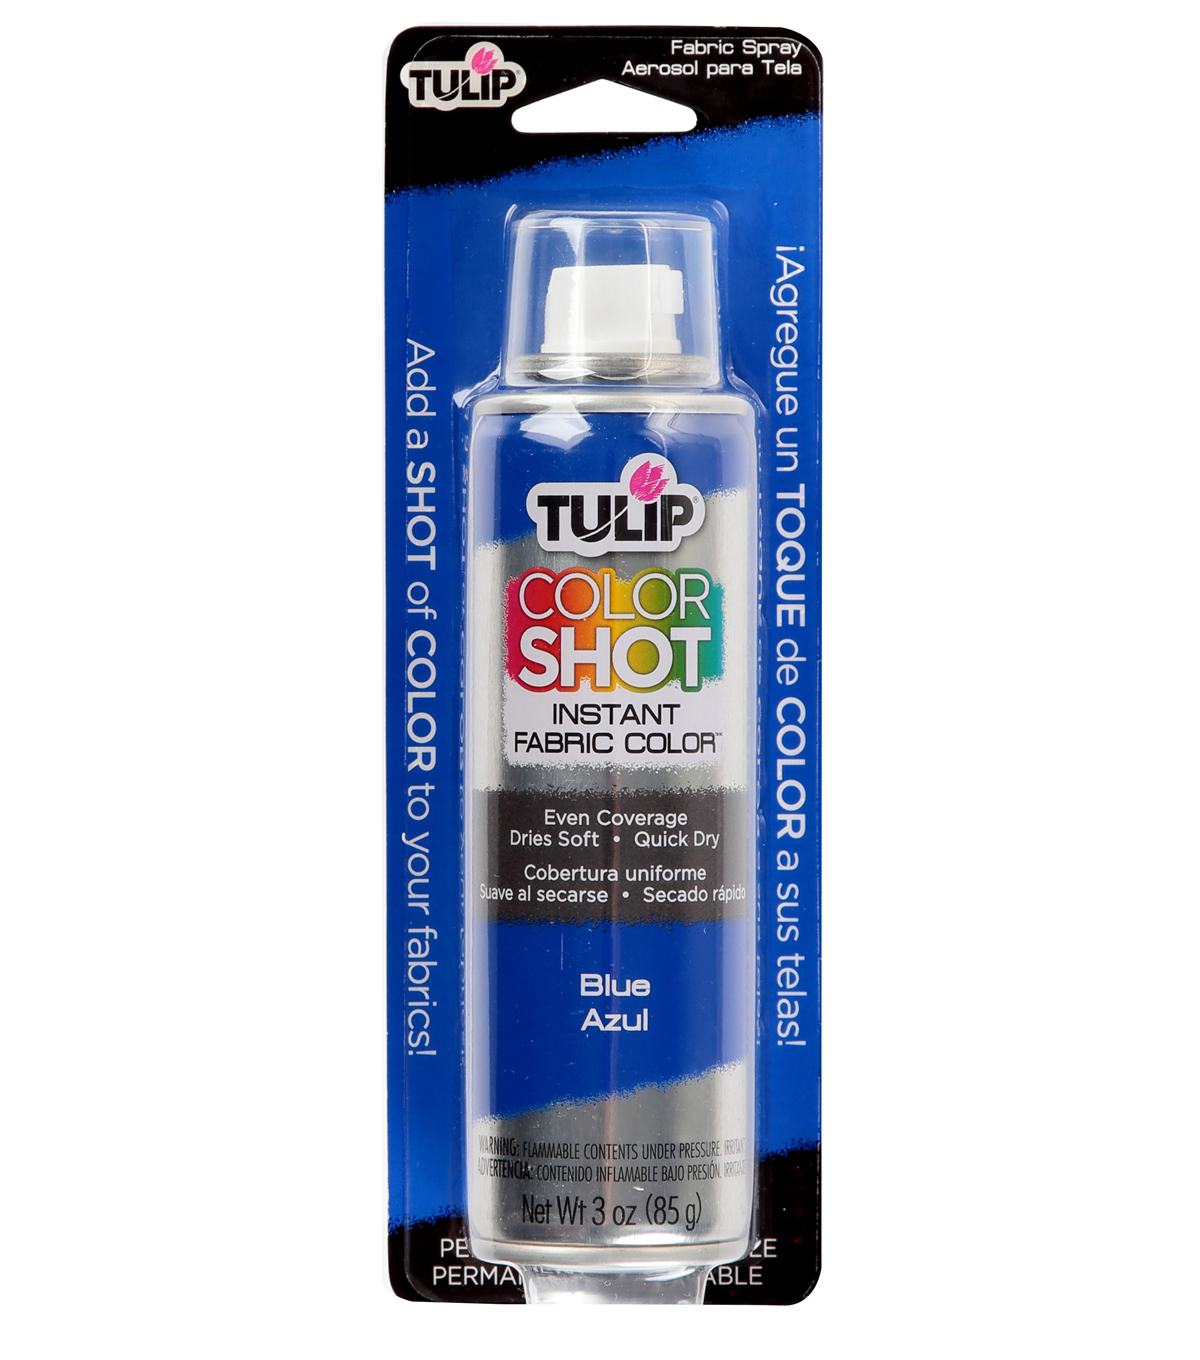 Tulip ColorShot Instant Fabric Color Spray 3oz, Blue